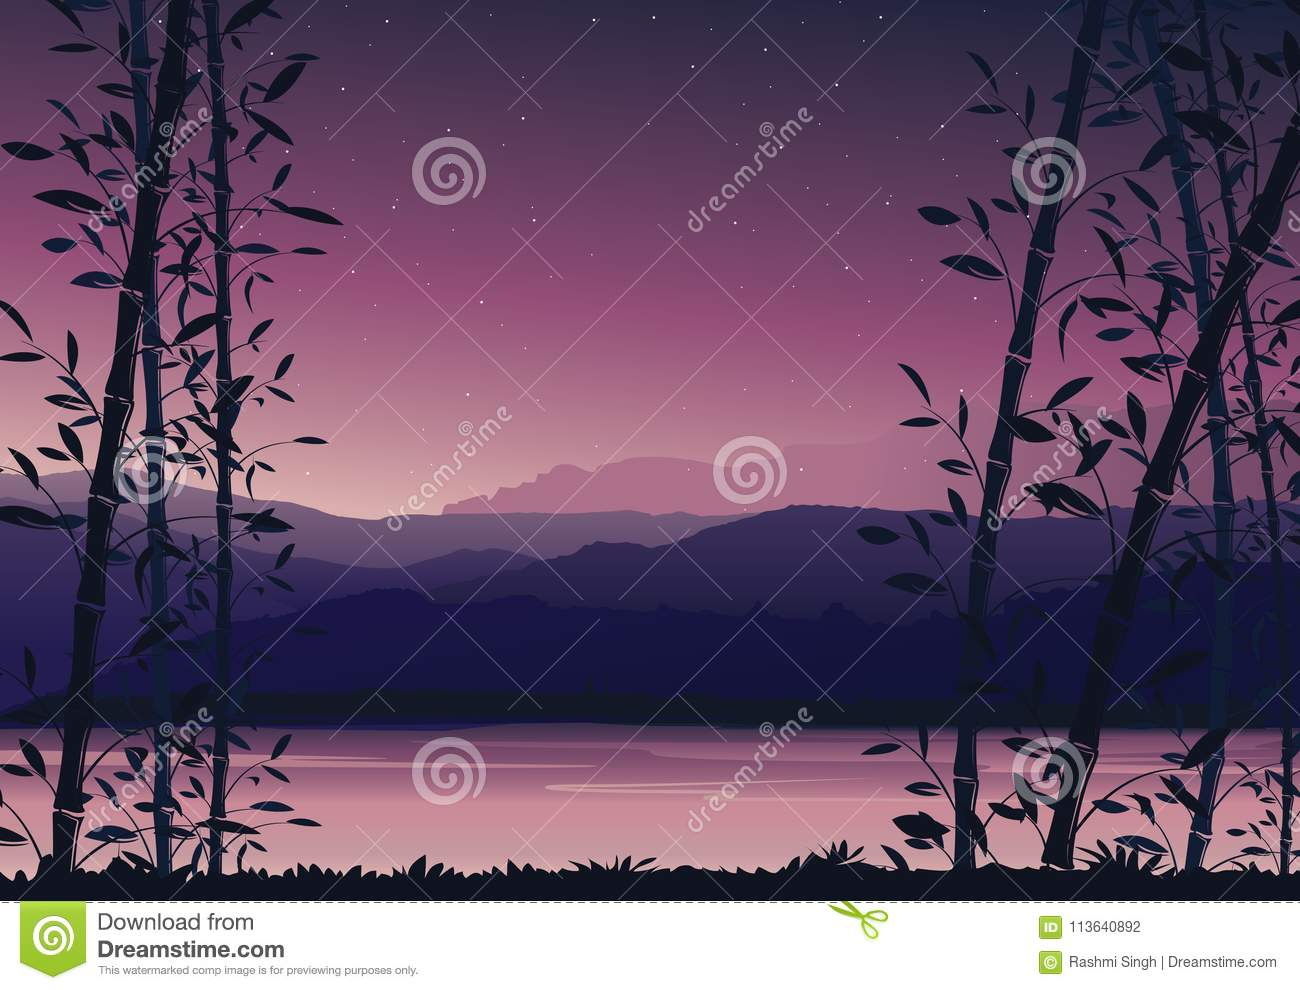 Nature Background With Bamboo Colorful Sunset Scenery Landscape Wallpaper